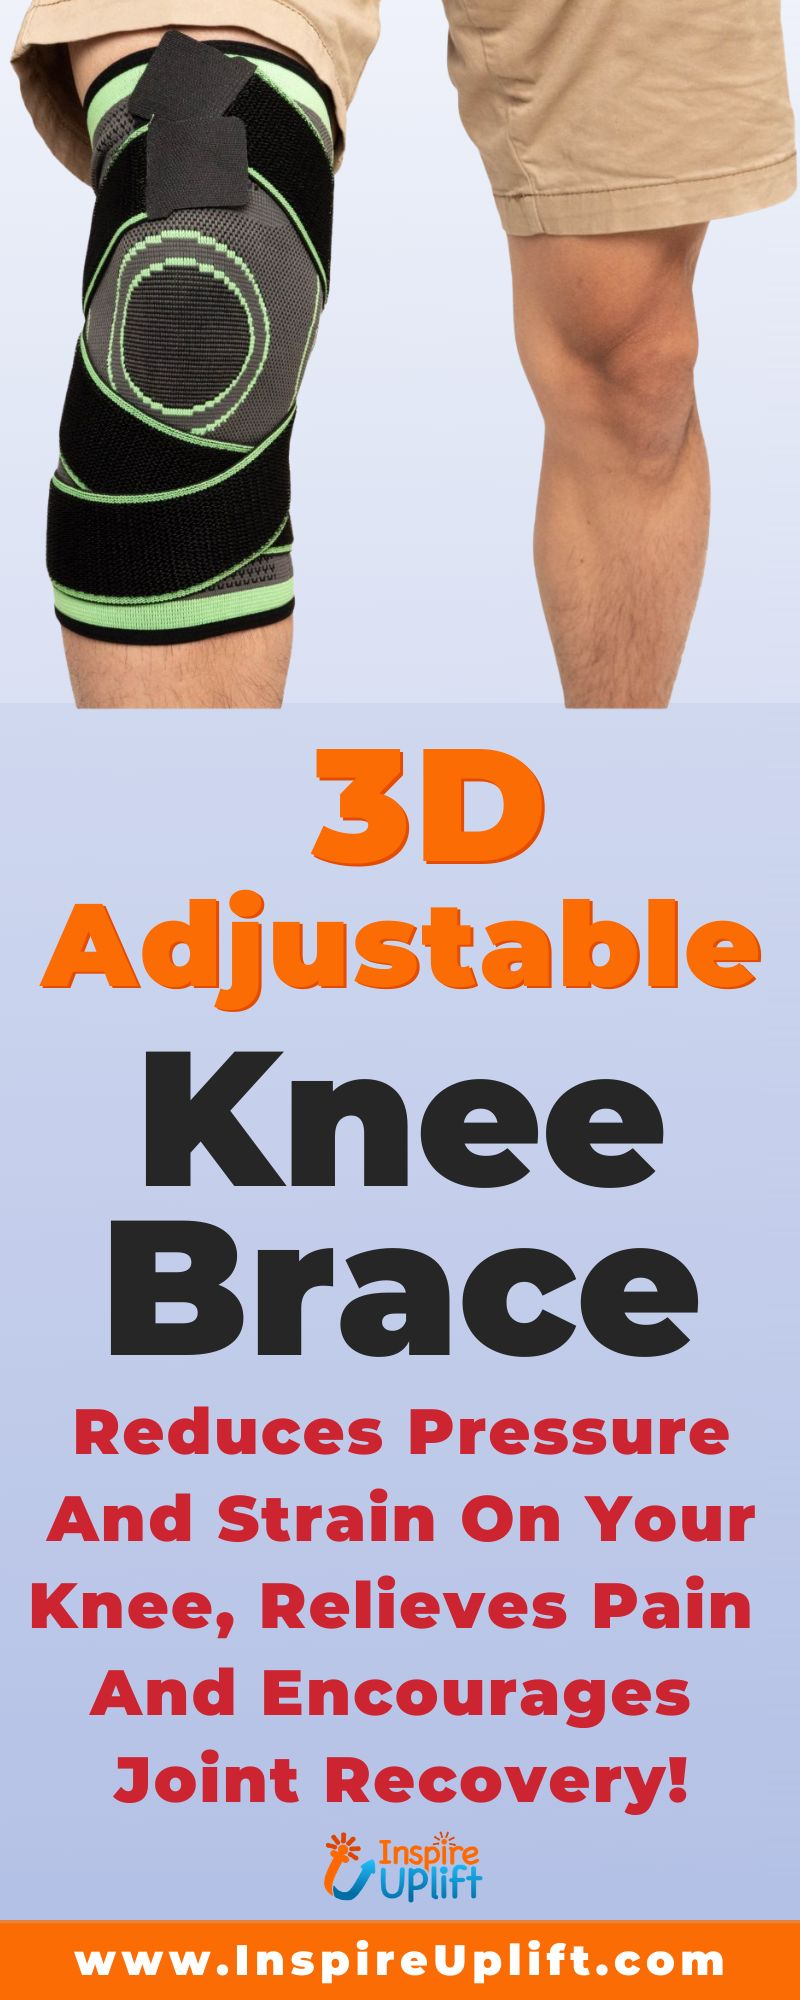 Your knees are important and need to be protected! Recent studies conclude that just walking on the ground causes our knees to bear a load that is 3-5 times heavier than our actual weight. An extended hike may be overwhelming, particularly to certain age groups or those who suffer with chronic knee pain. Use of this unique 3D knee compression brace provides better protection while tremendously reducing pressure and strain on your knee and meniscus caused by your weight.